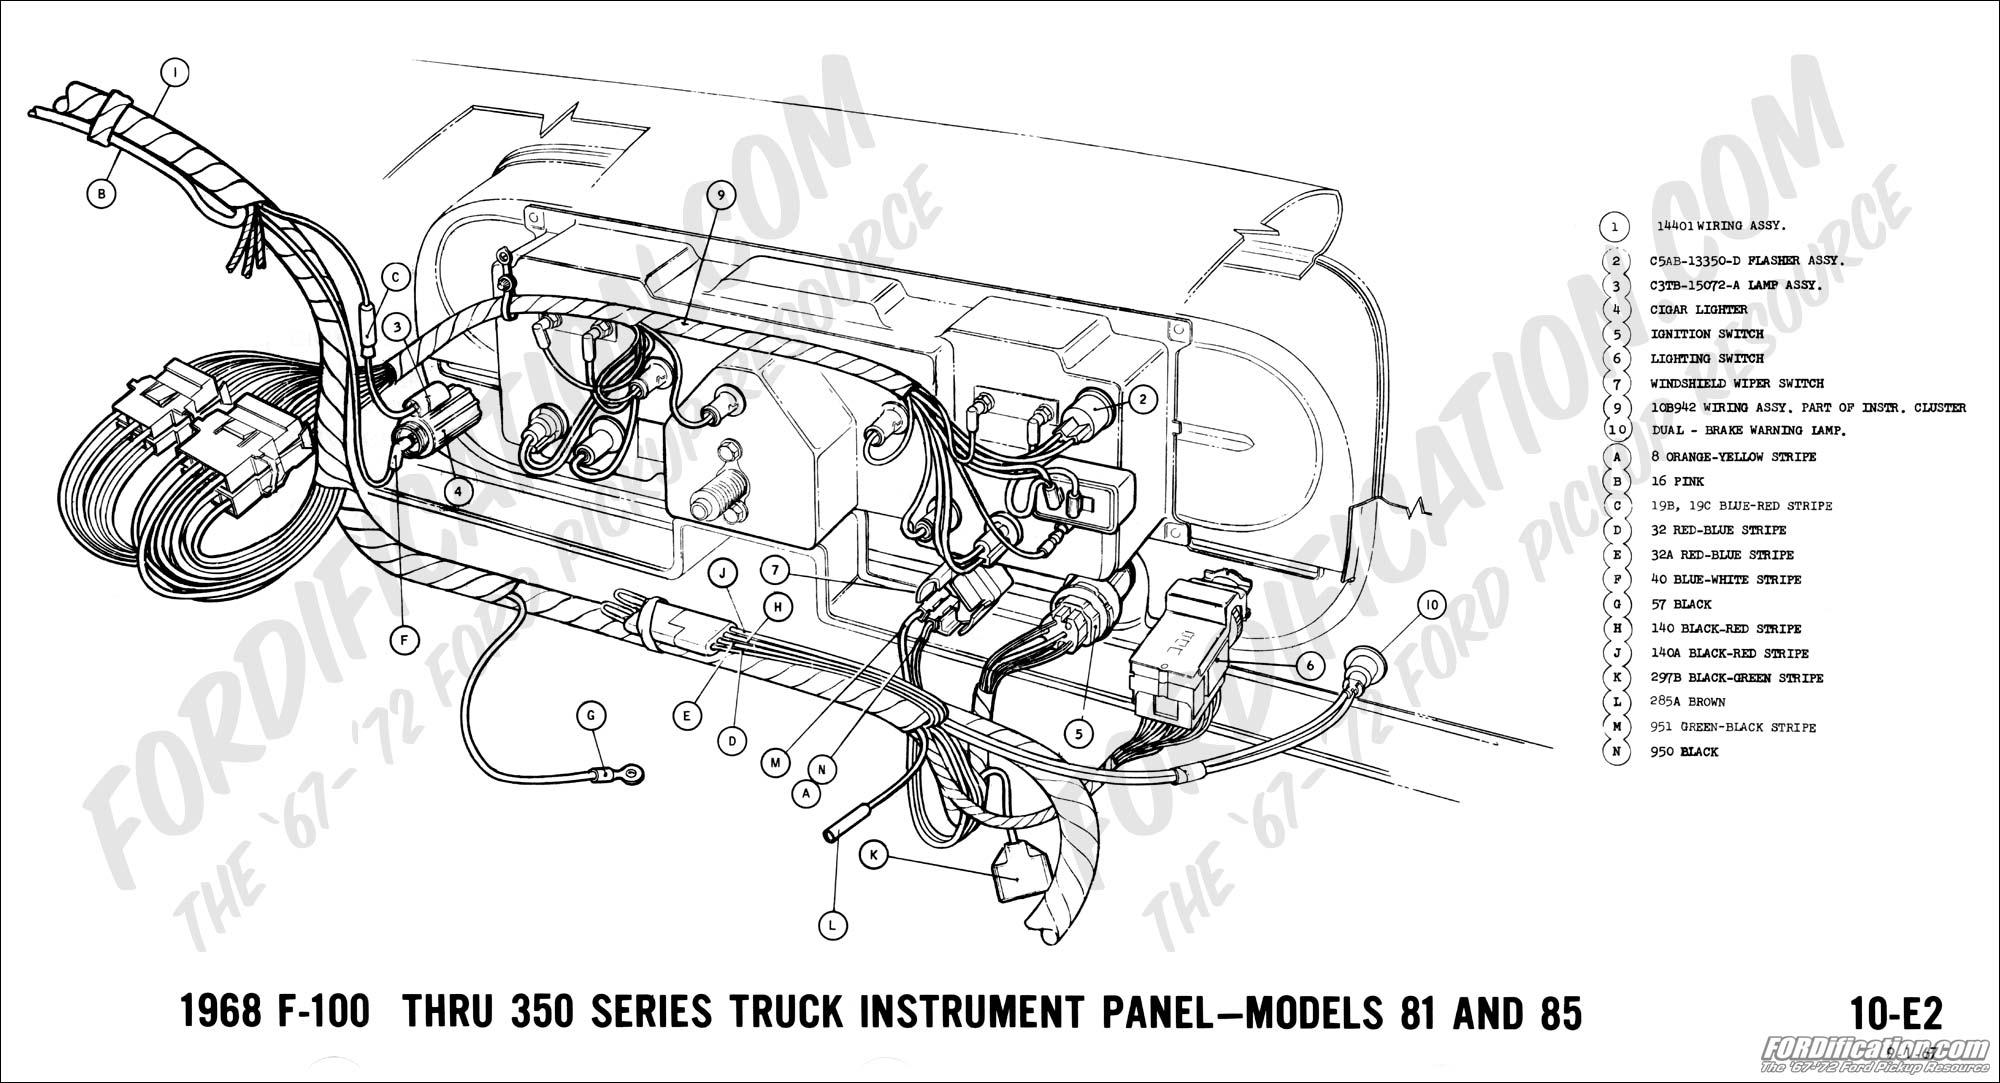 68 04 1968 ford f250 engine diagram best wiring library